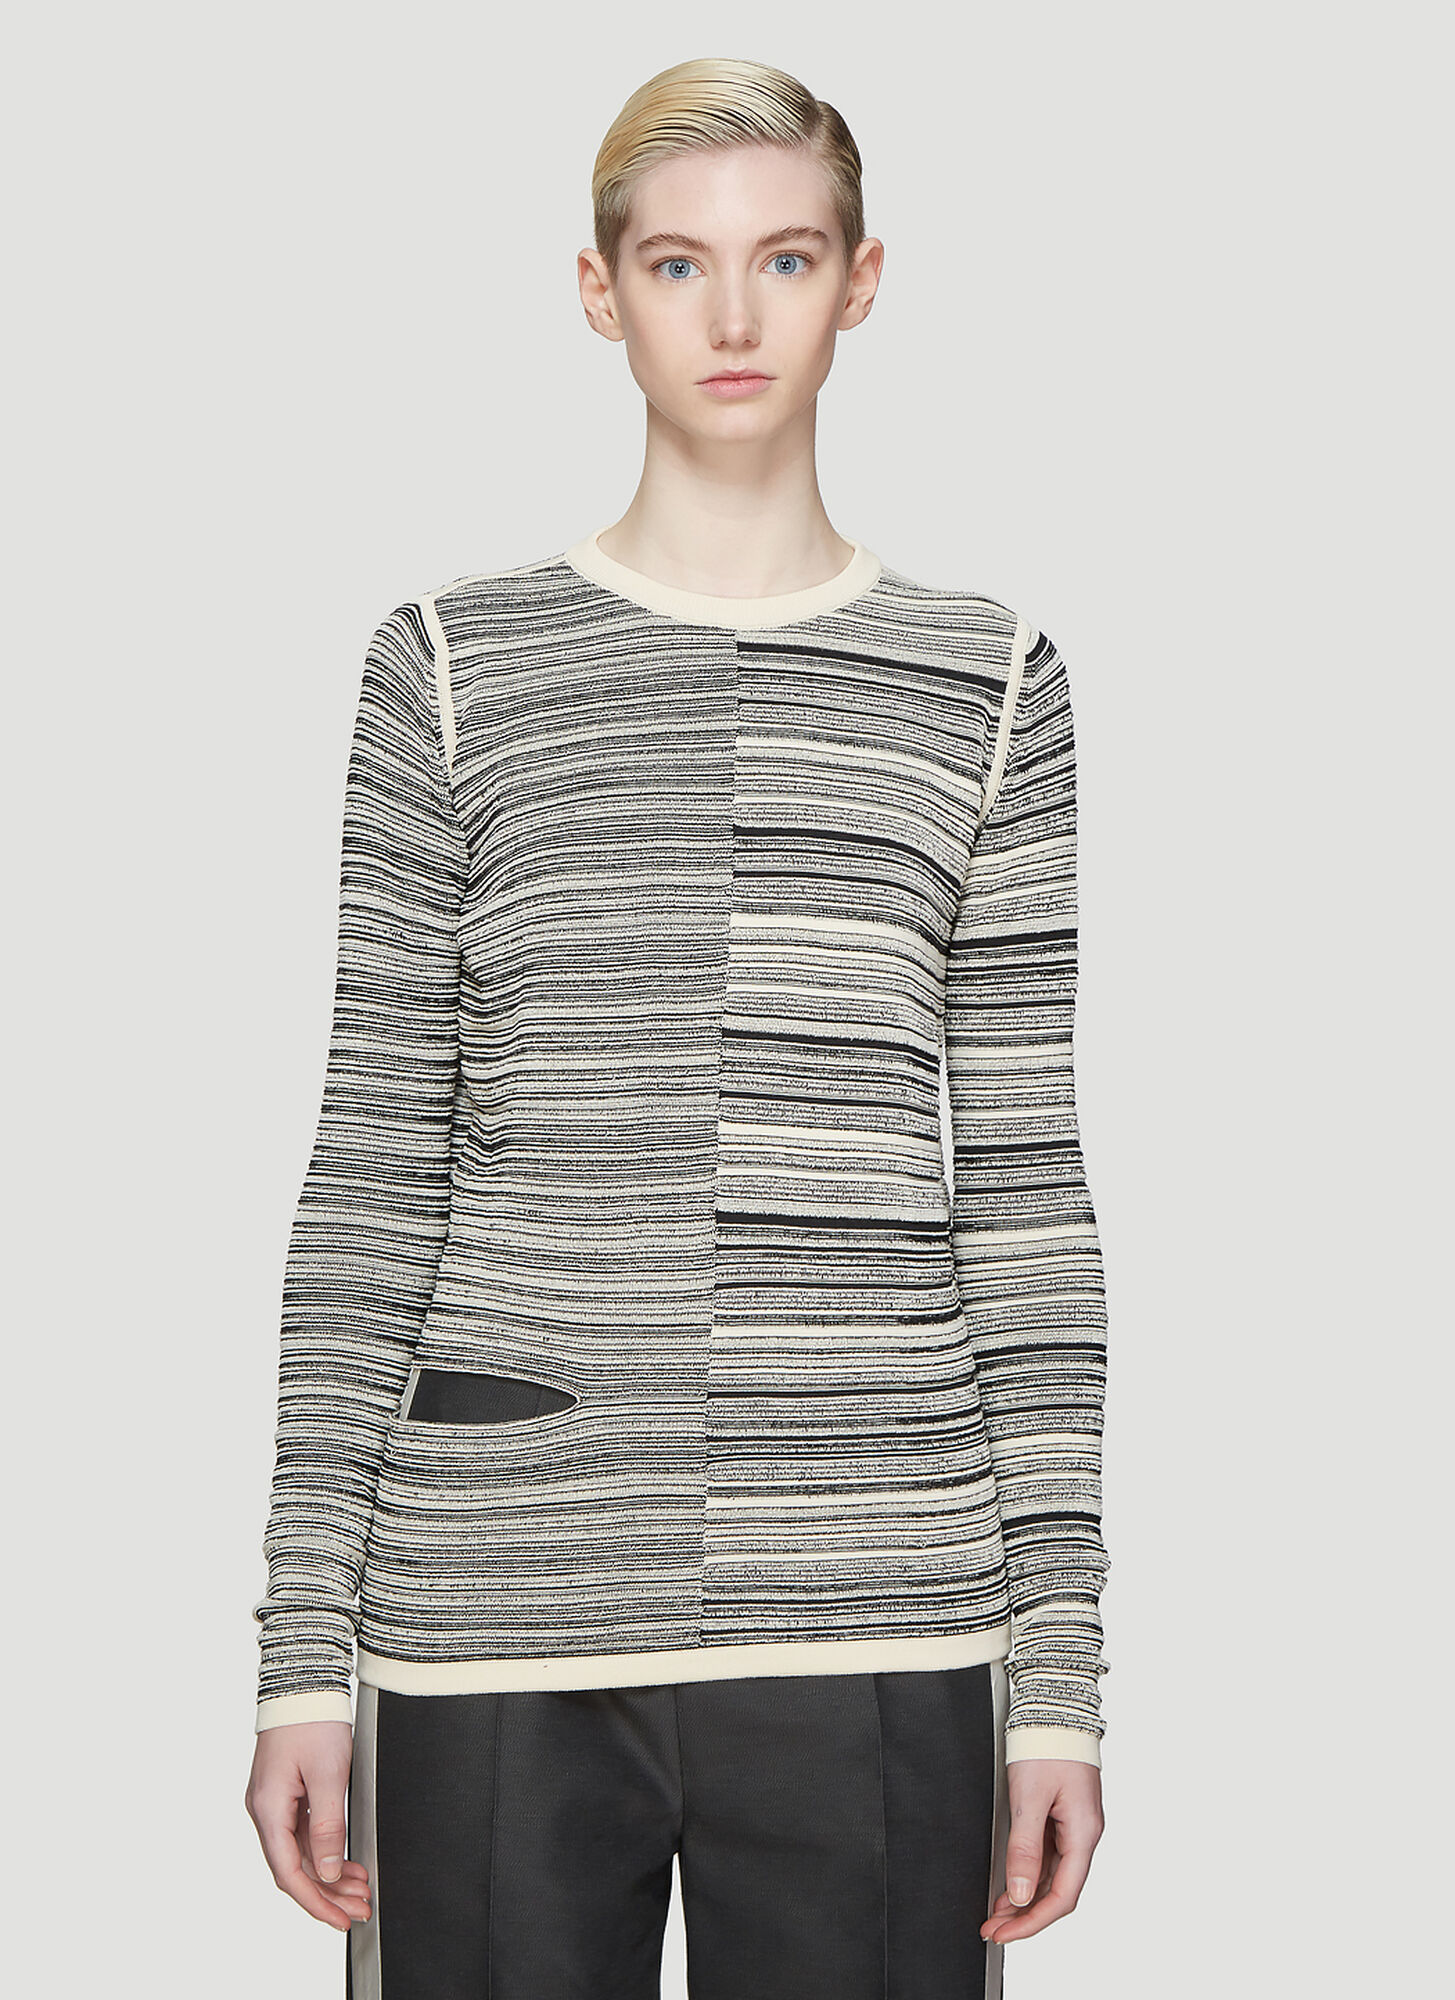 Rick Owens Sub Shred Mix Sweater in Beige